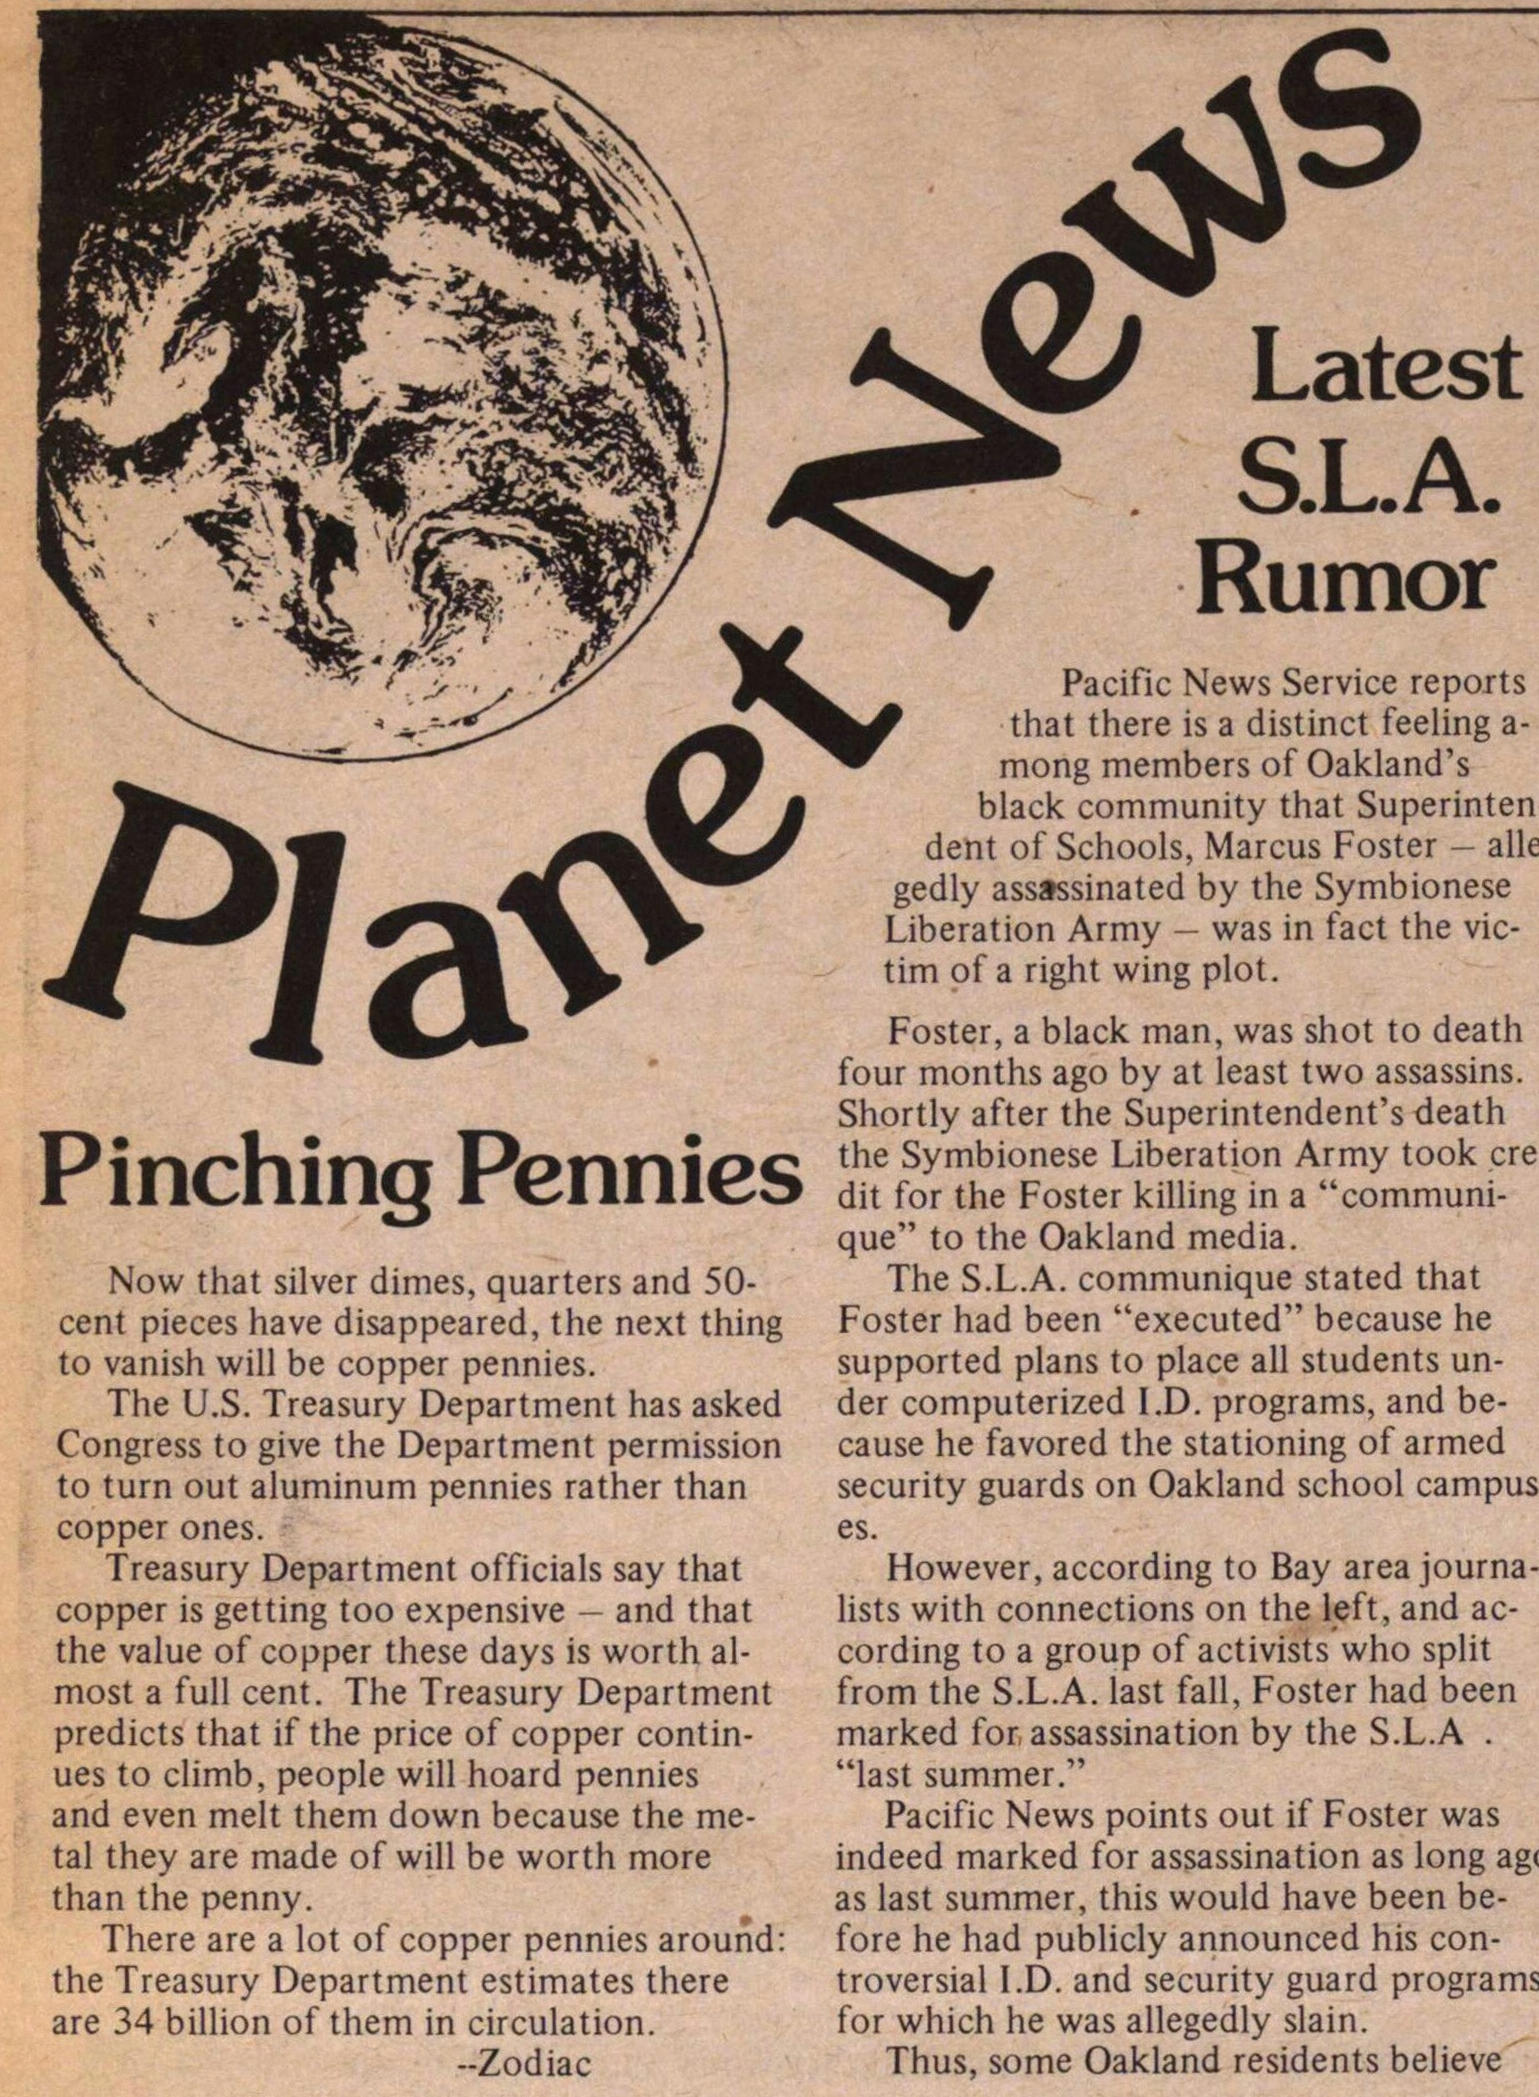 Planet News -- Pinching Pennies image